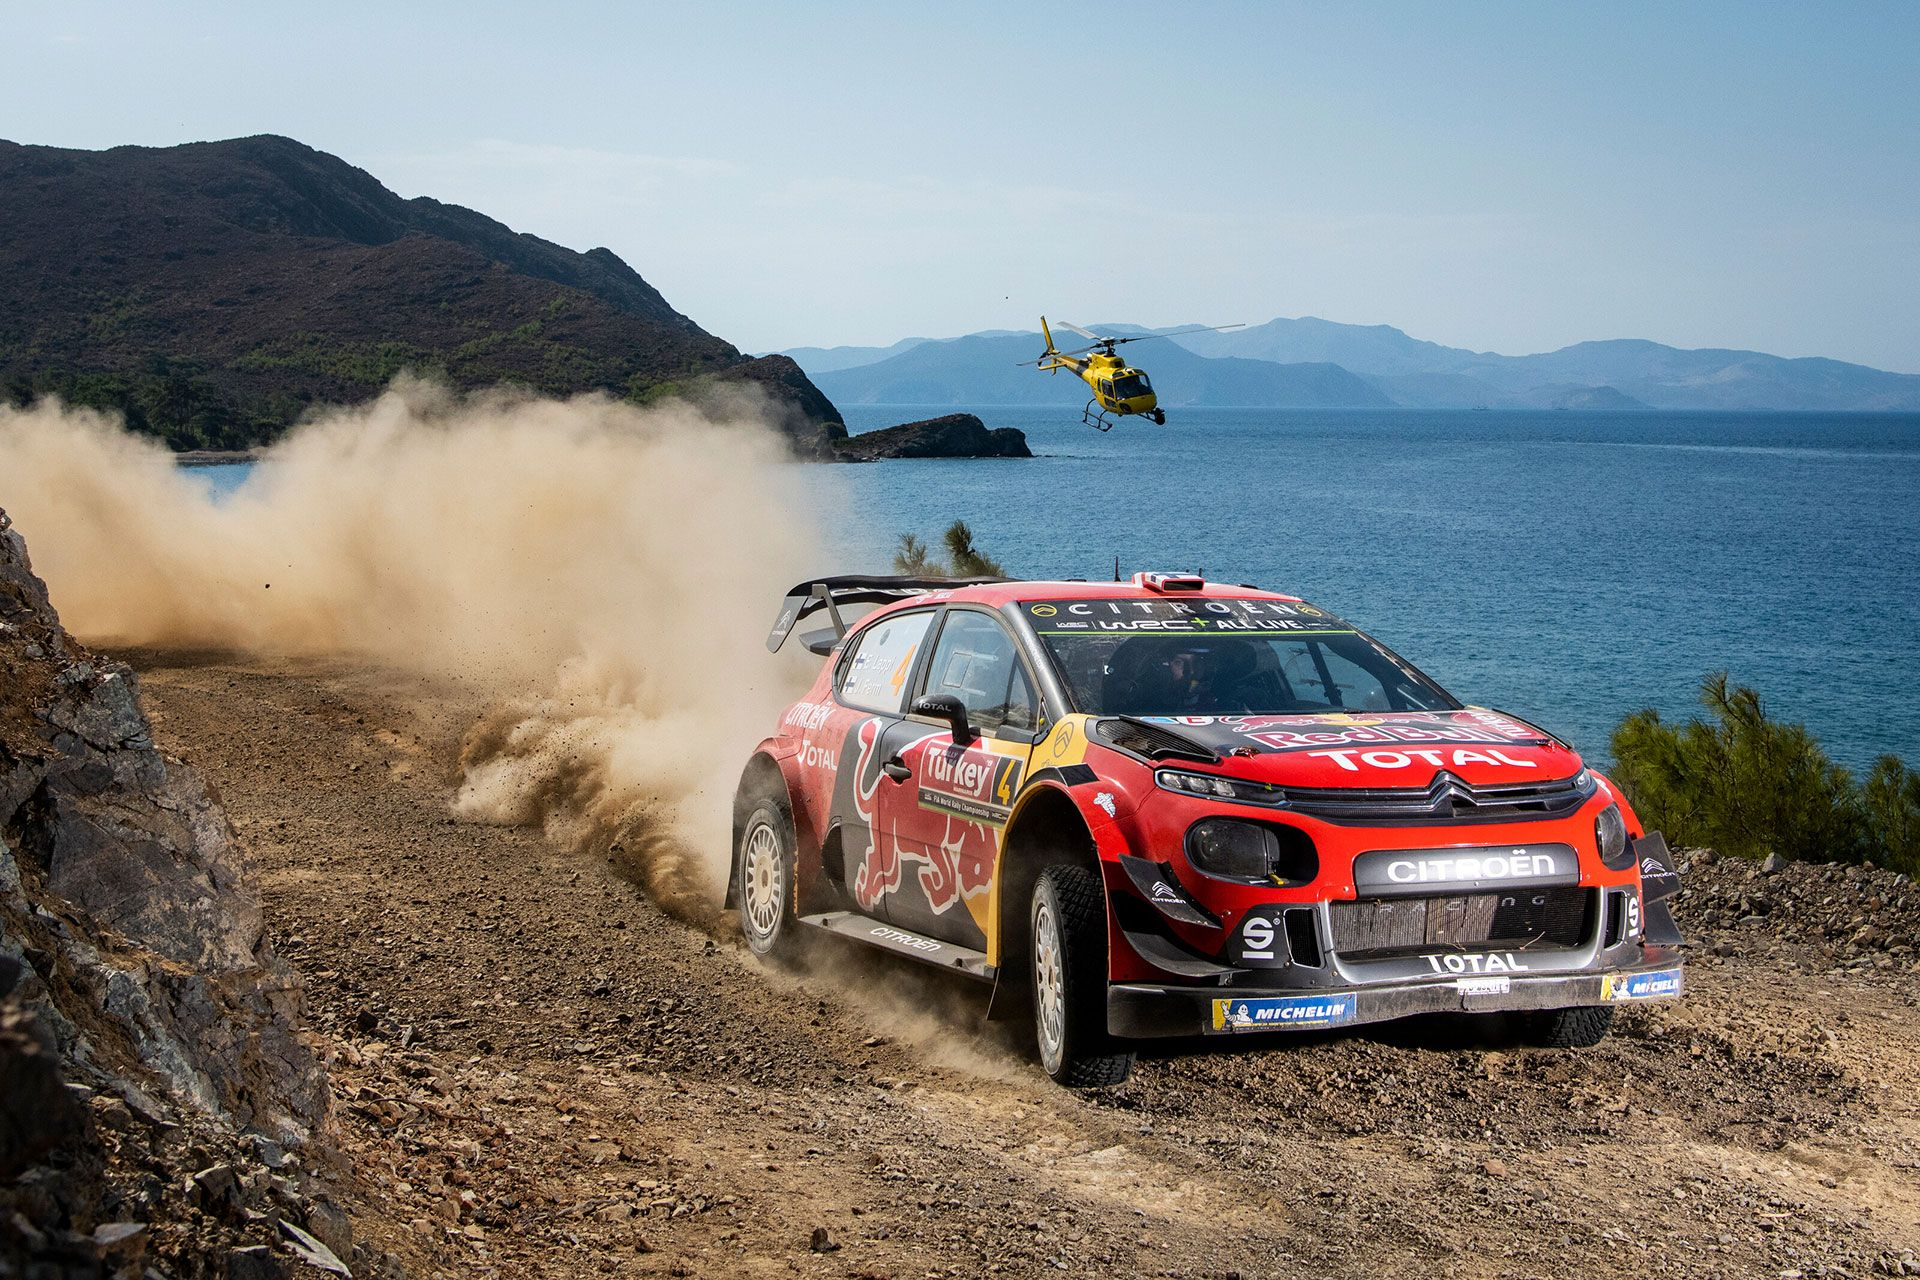 Ogier and Lappi Give Citroën a Solid One-Two at Rally Turkey